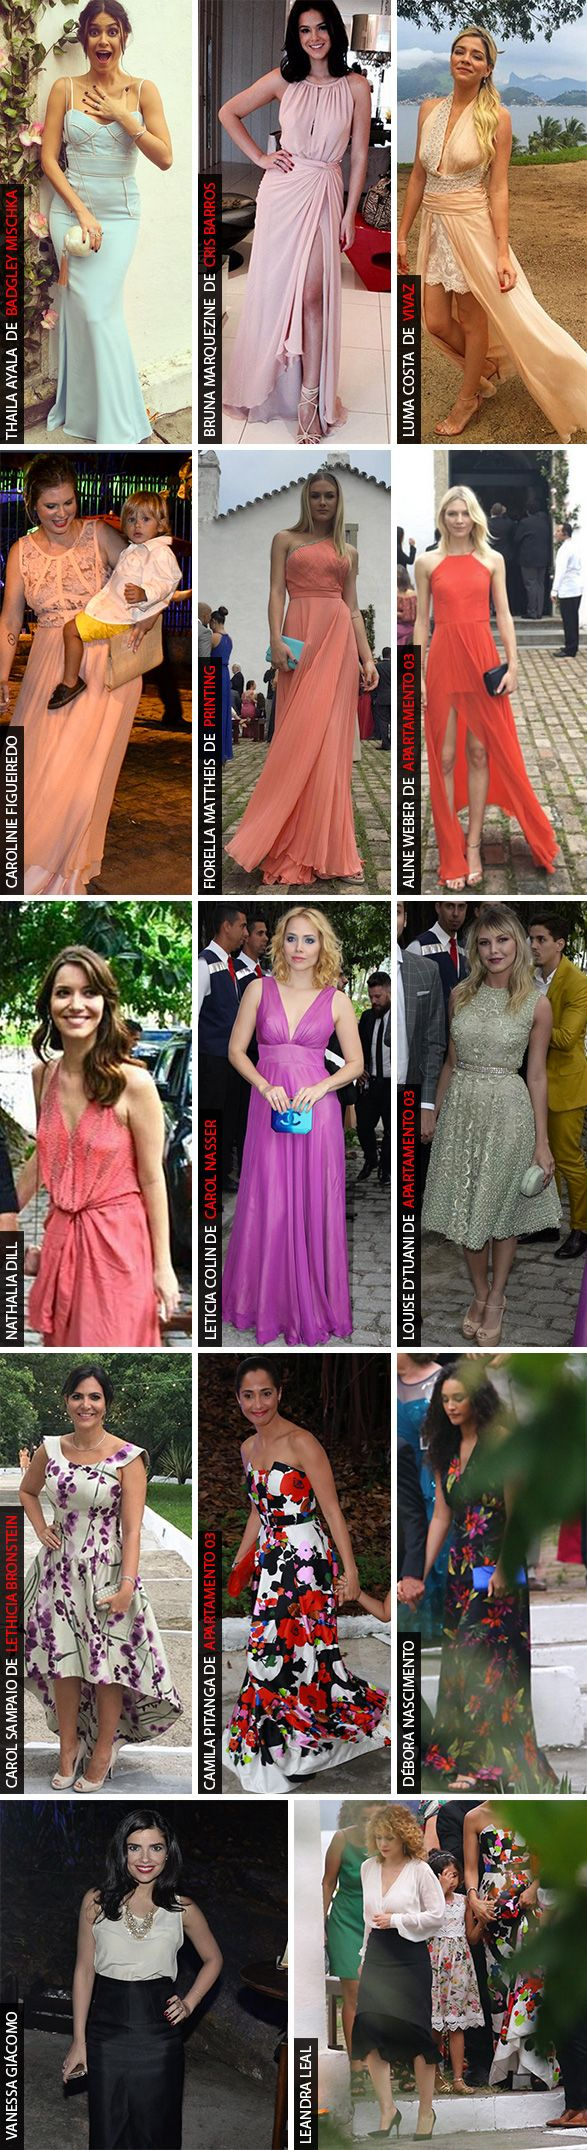 Vestidos para madrinhas e convidadas de casamentos durante o dia/ candy color dress for weddings